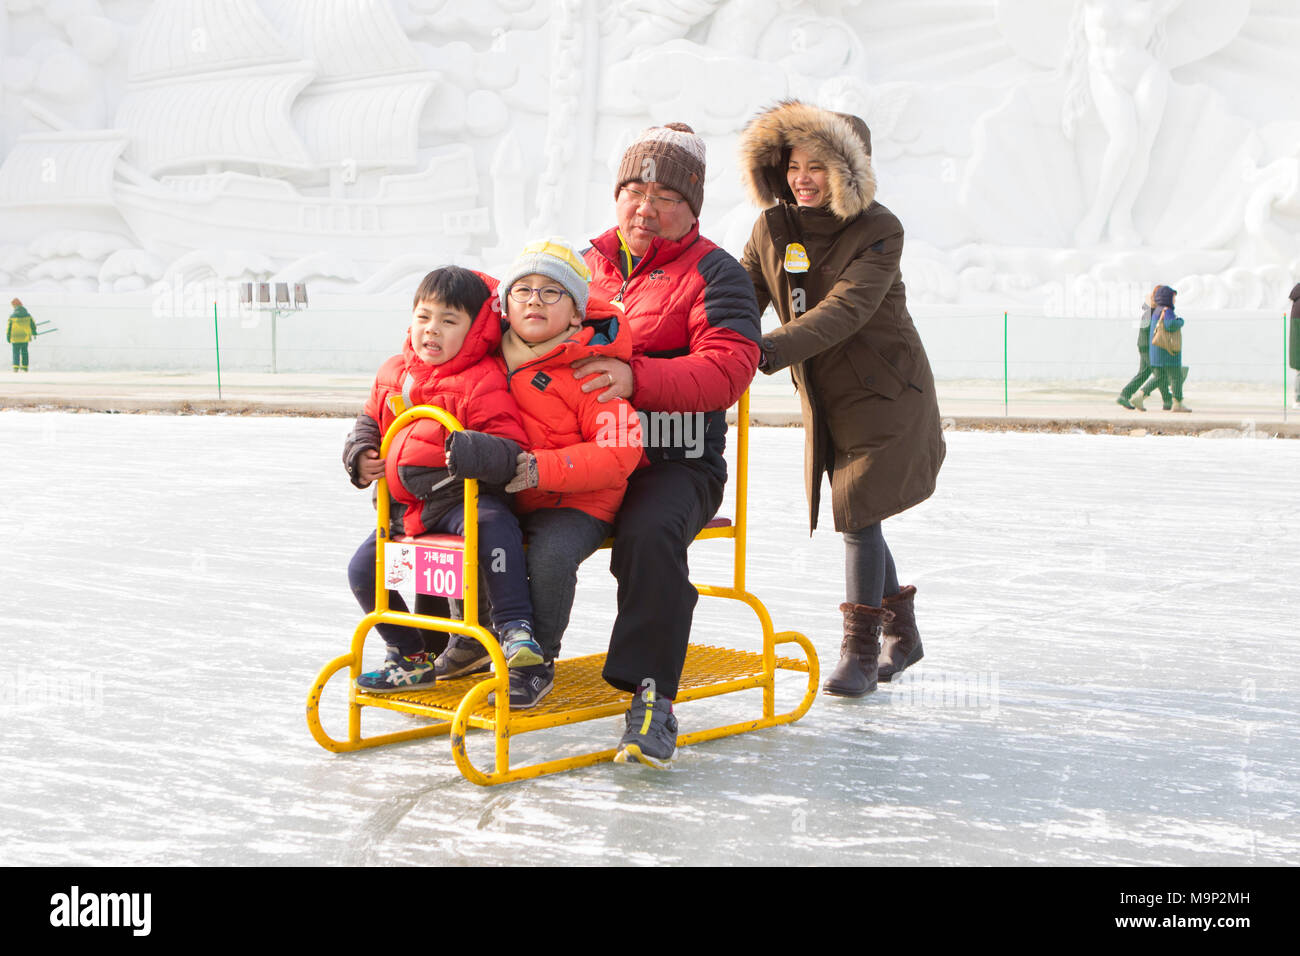 An Asian family is having fun on a group sled at a frozen river.  The Hwacheon Sancheoneo Ice Festival is a tradition for Korean people. Every year in January crowds gather at the frozen river to celebrate the cold and snow of winter. Main attraction is ice fishing. Young and old wait patiently over a small hole in the ice for a trout to bite. In tents they can let the fish grilled after which they are eaten. Among other activities are sledding and ice skating.  The nearby Pyeongchang region will host the Winter Olympics in February 2018. Stock Photo